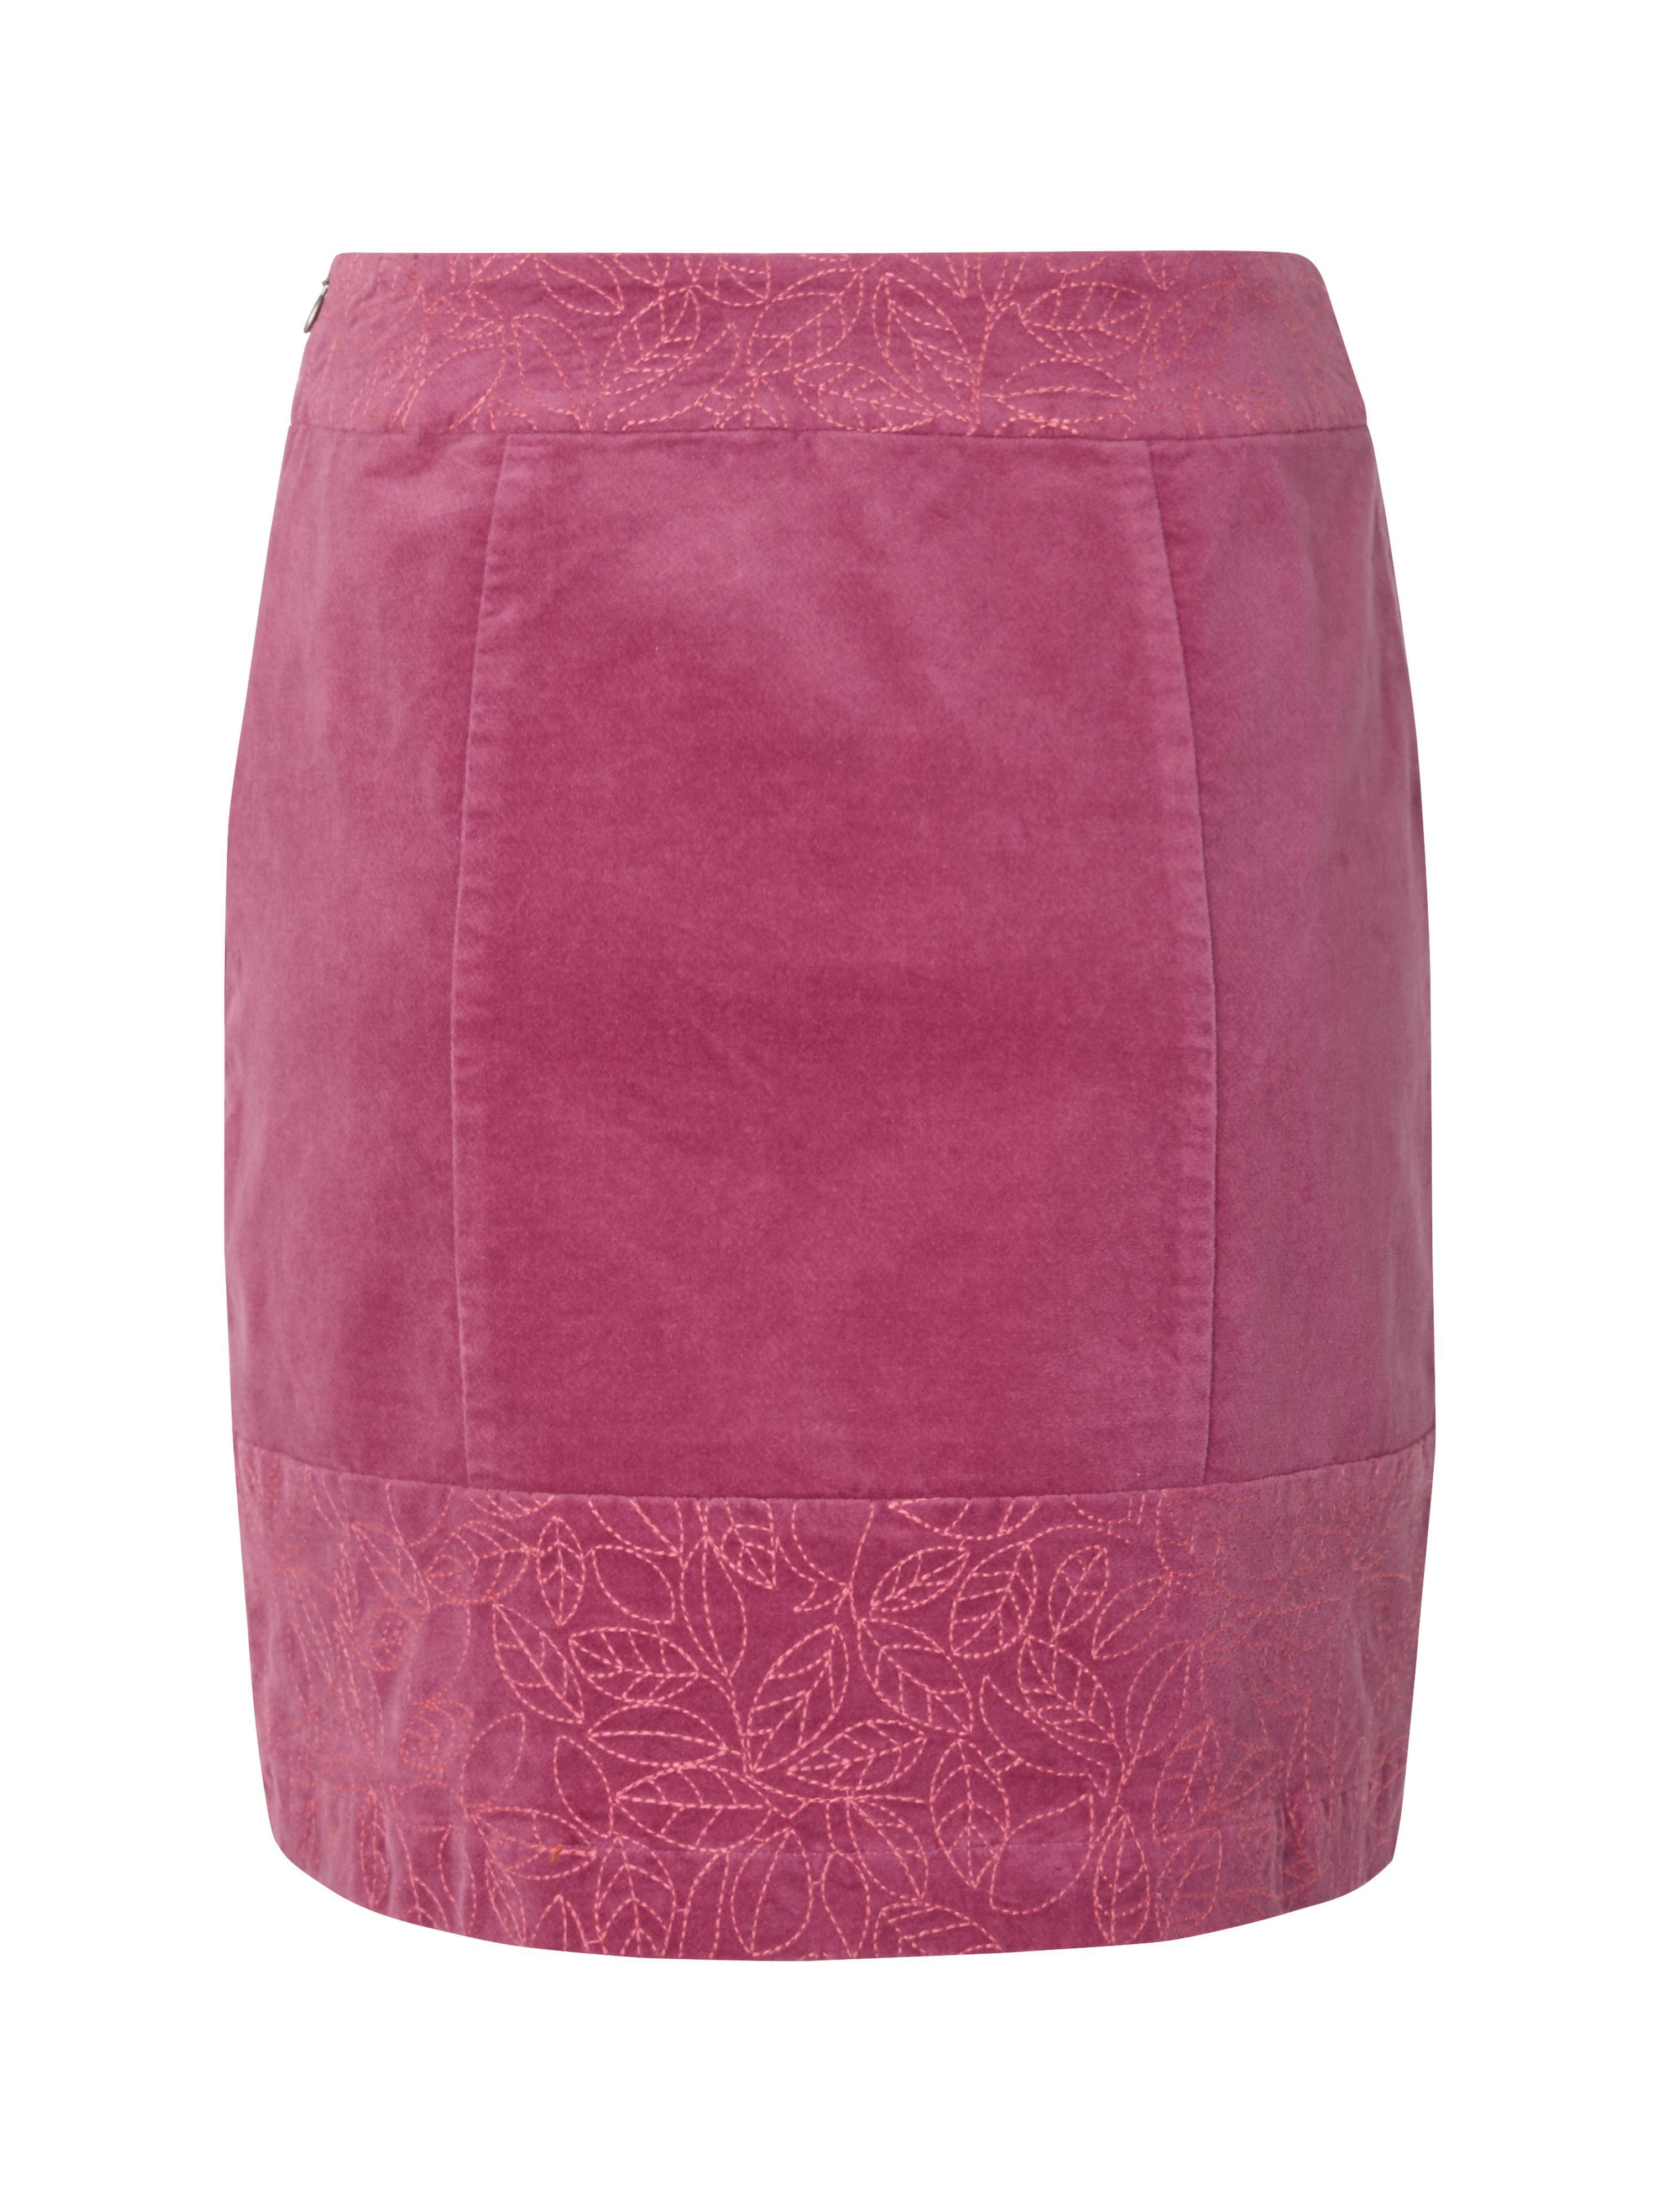 Summers end velvet skirt